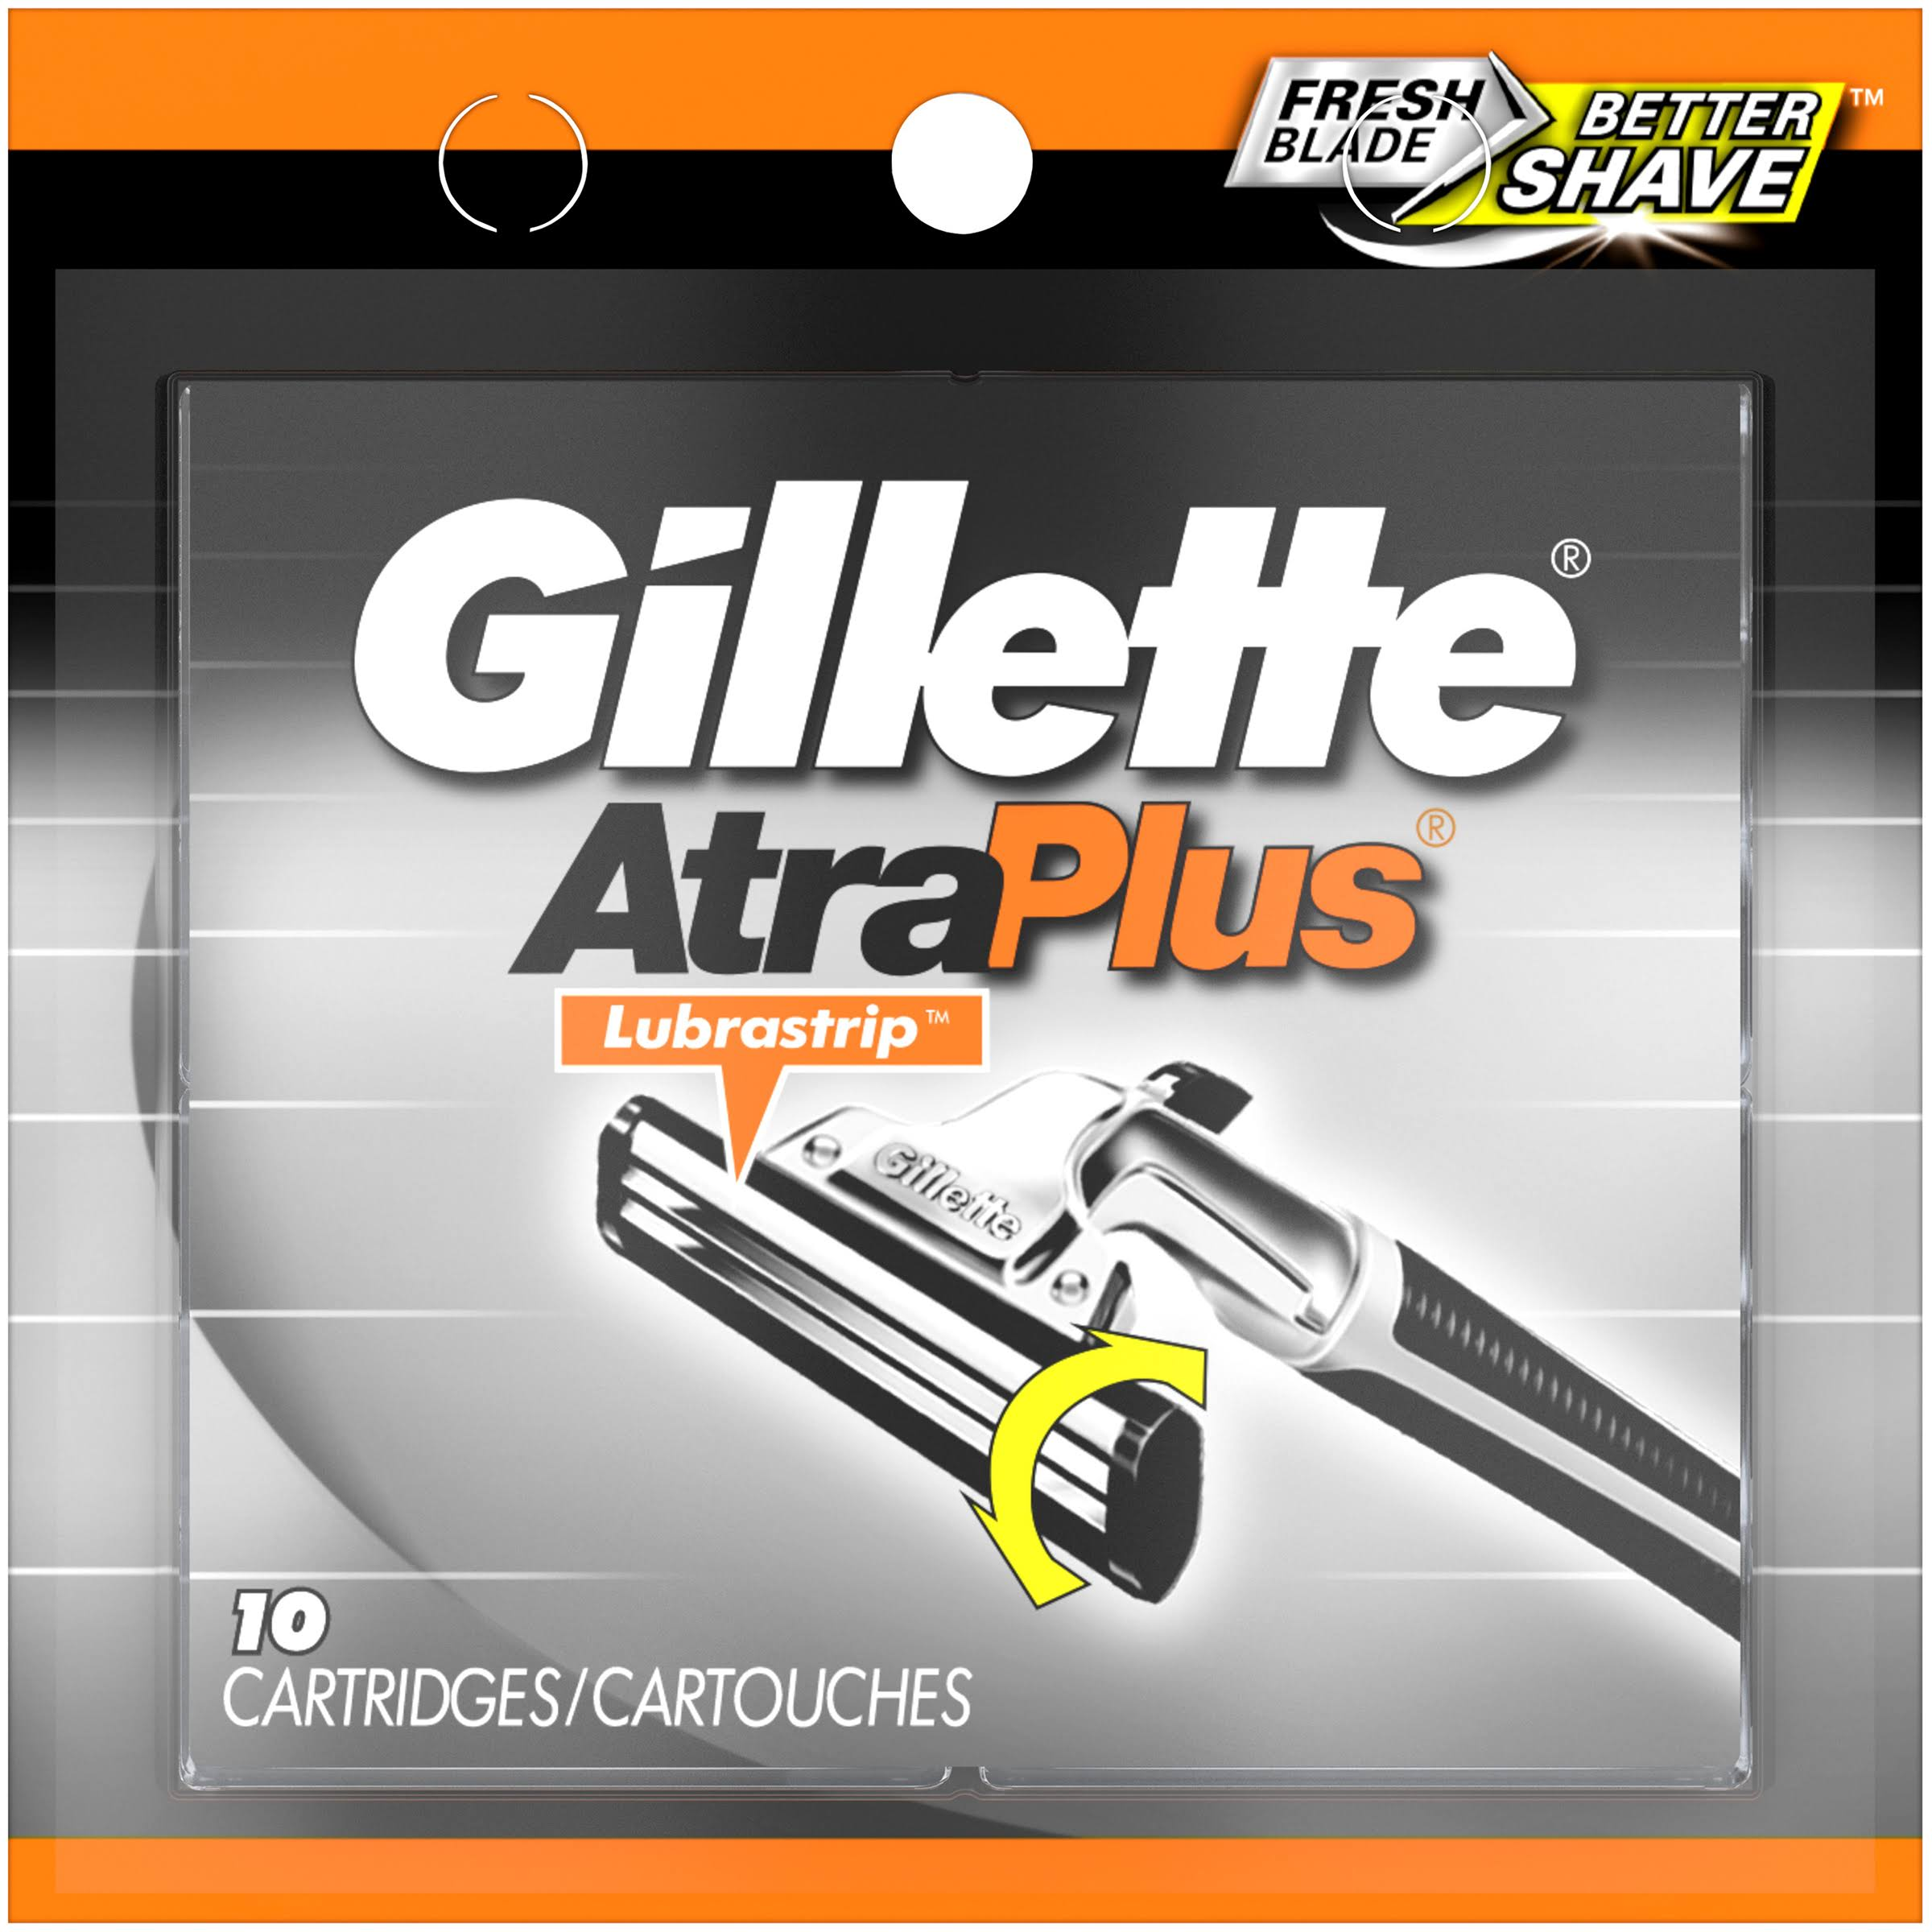 Gillette AtraPlus Cartridges - 10pk